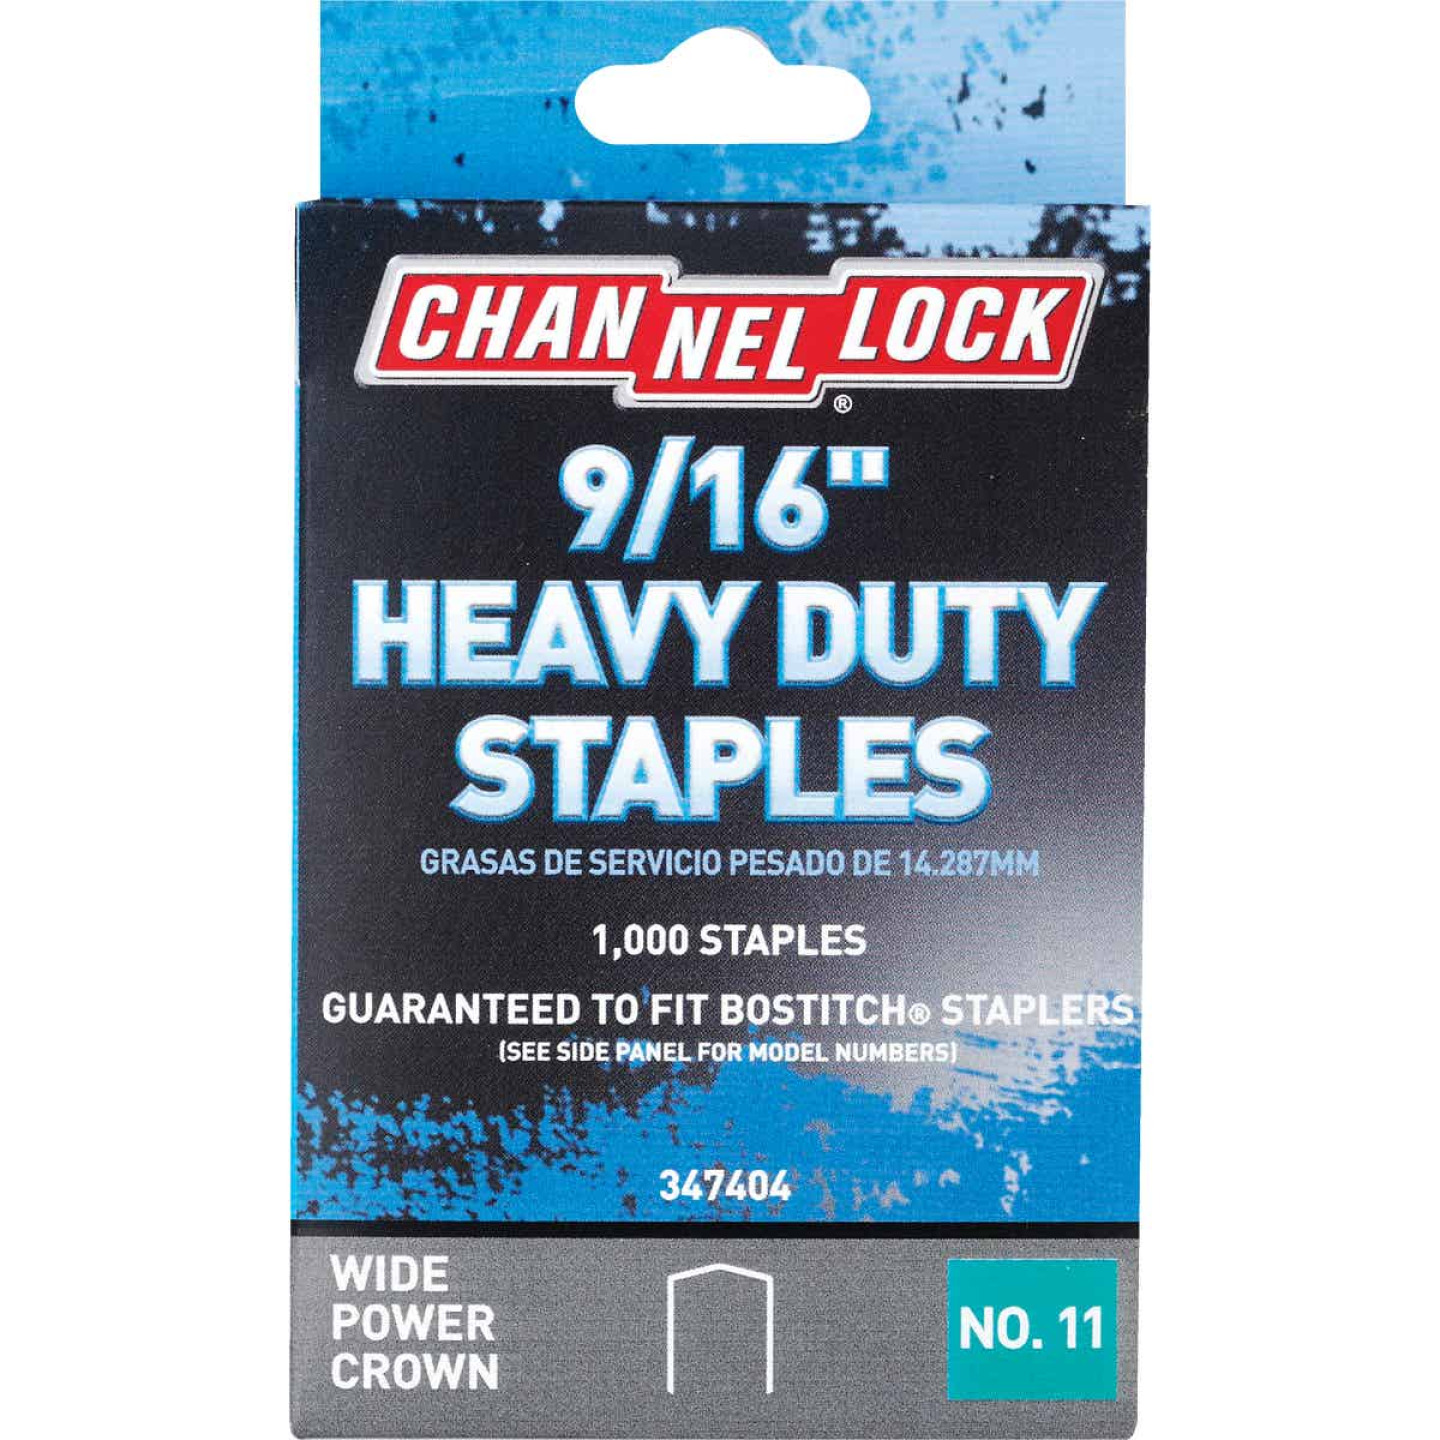 Channellock No. 11 Heavy-Duty Wide Power Crown Staple, 9/16 In. (1000-Pack) Image 1